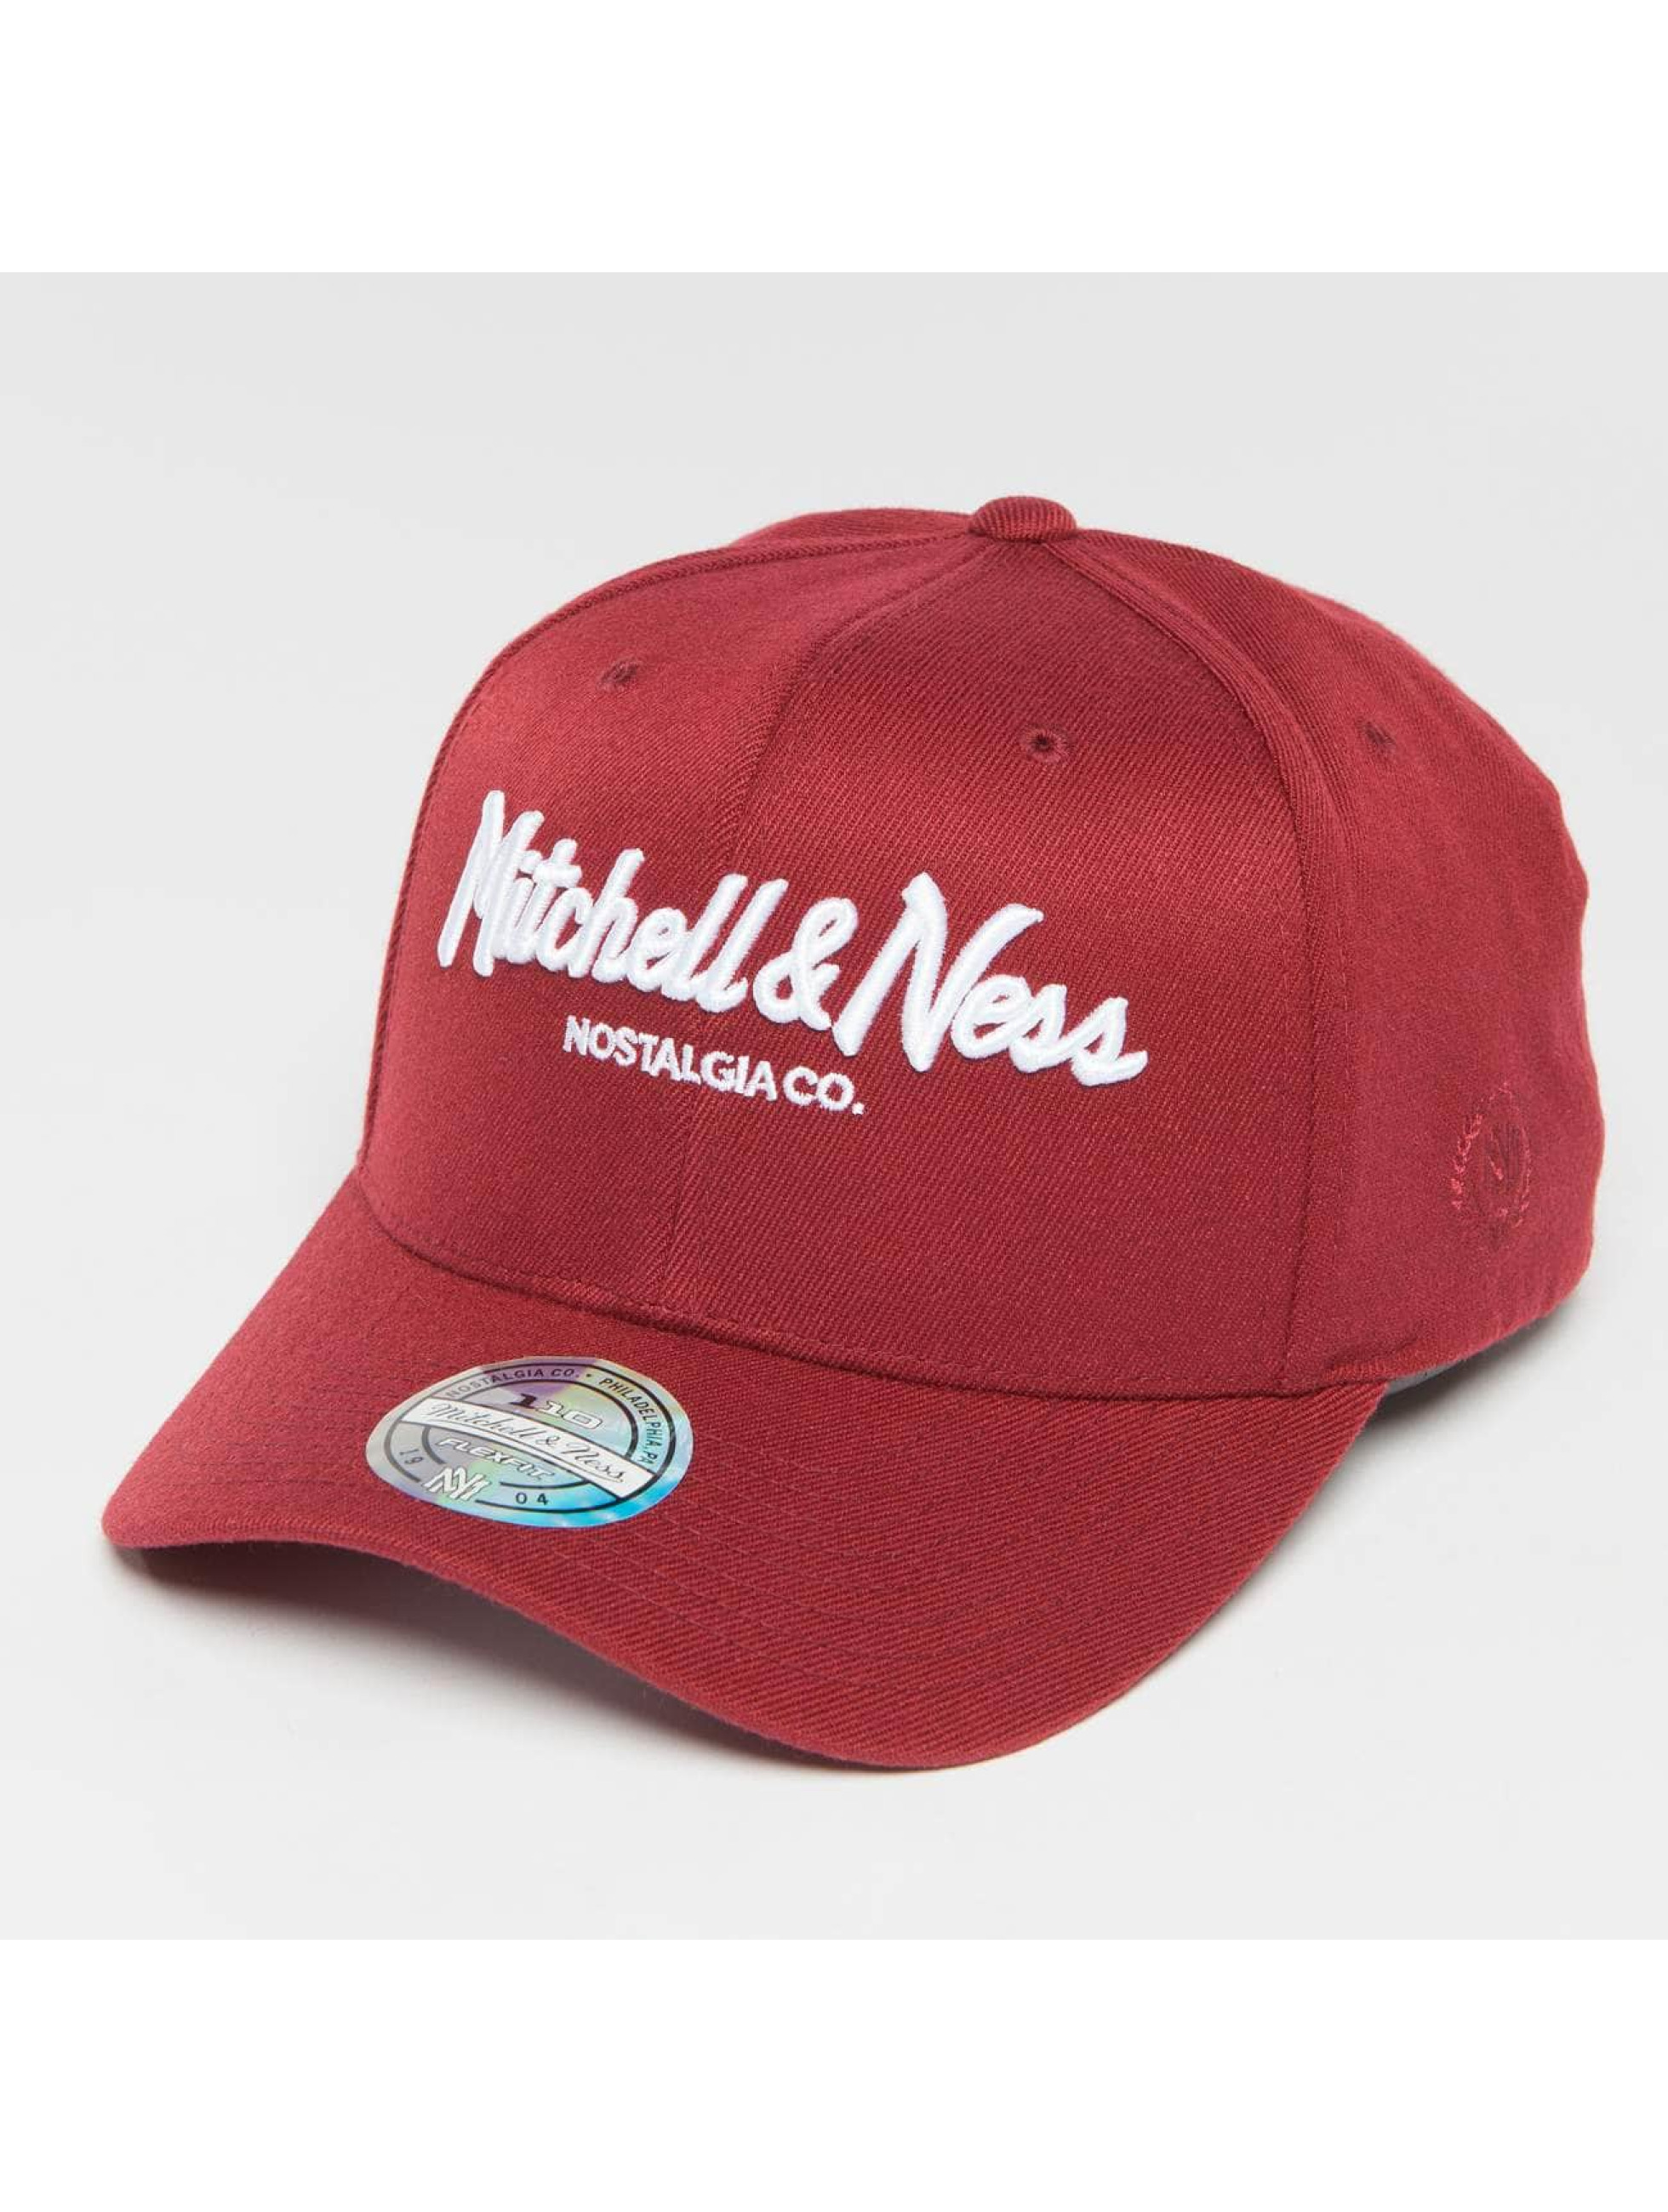 Mitchell & Ness Snapback Caps The Burgundy 2-Tone Pinscript 110 red